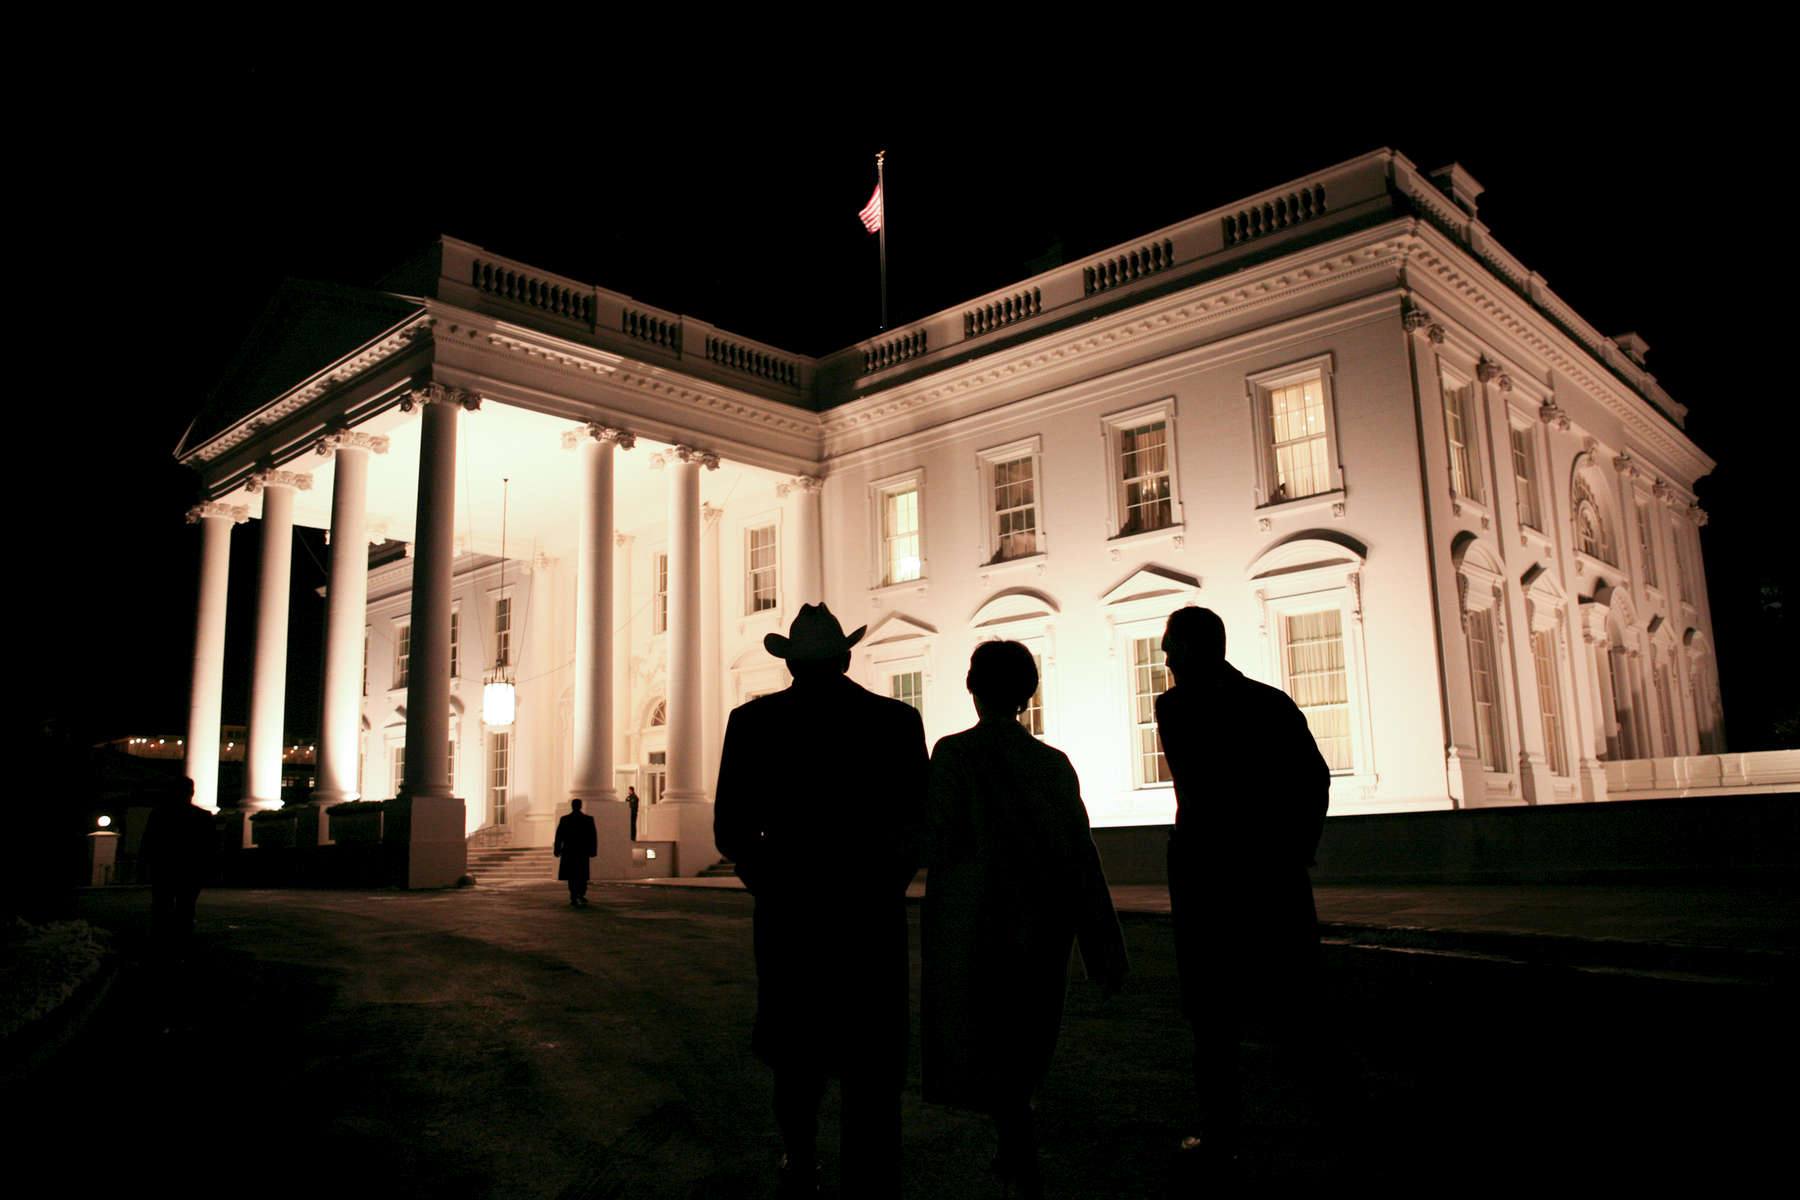 President Bush, Laura Bush: Departure following Reception in Honor of the Chief of Protocol Ambassador Donald Ensenat at Blair House. Walking down Pennsylvania Avenue to the North Grounds of the White House.  Silhouette. POW